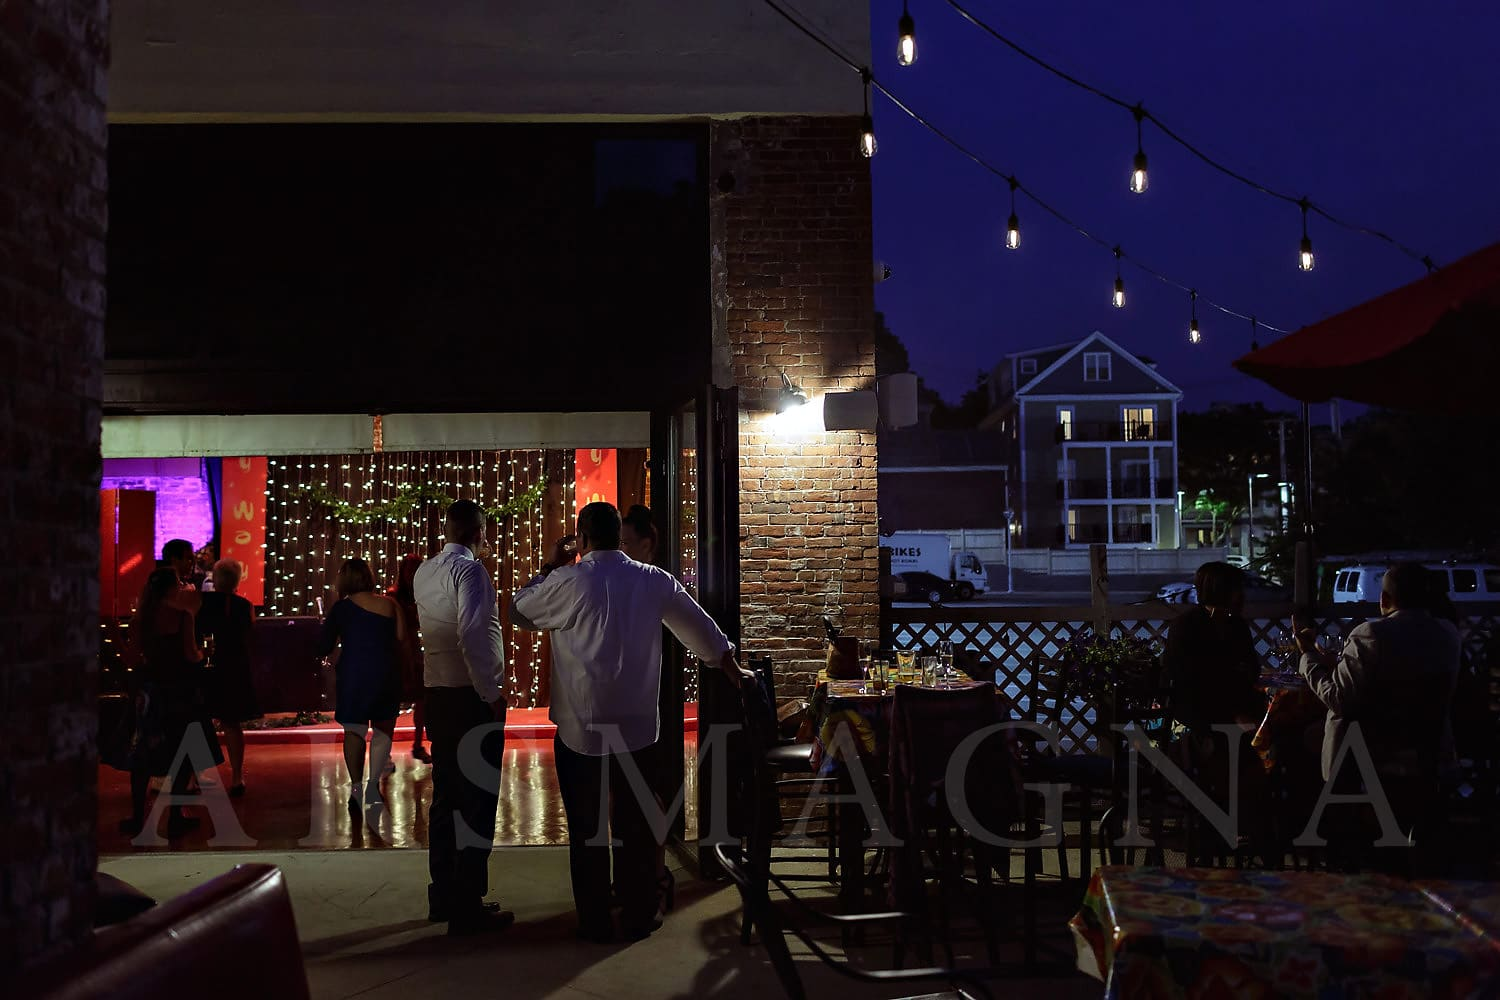 jamaica plain wedding photography indie reception milky way bella luna patio